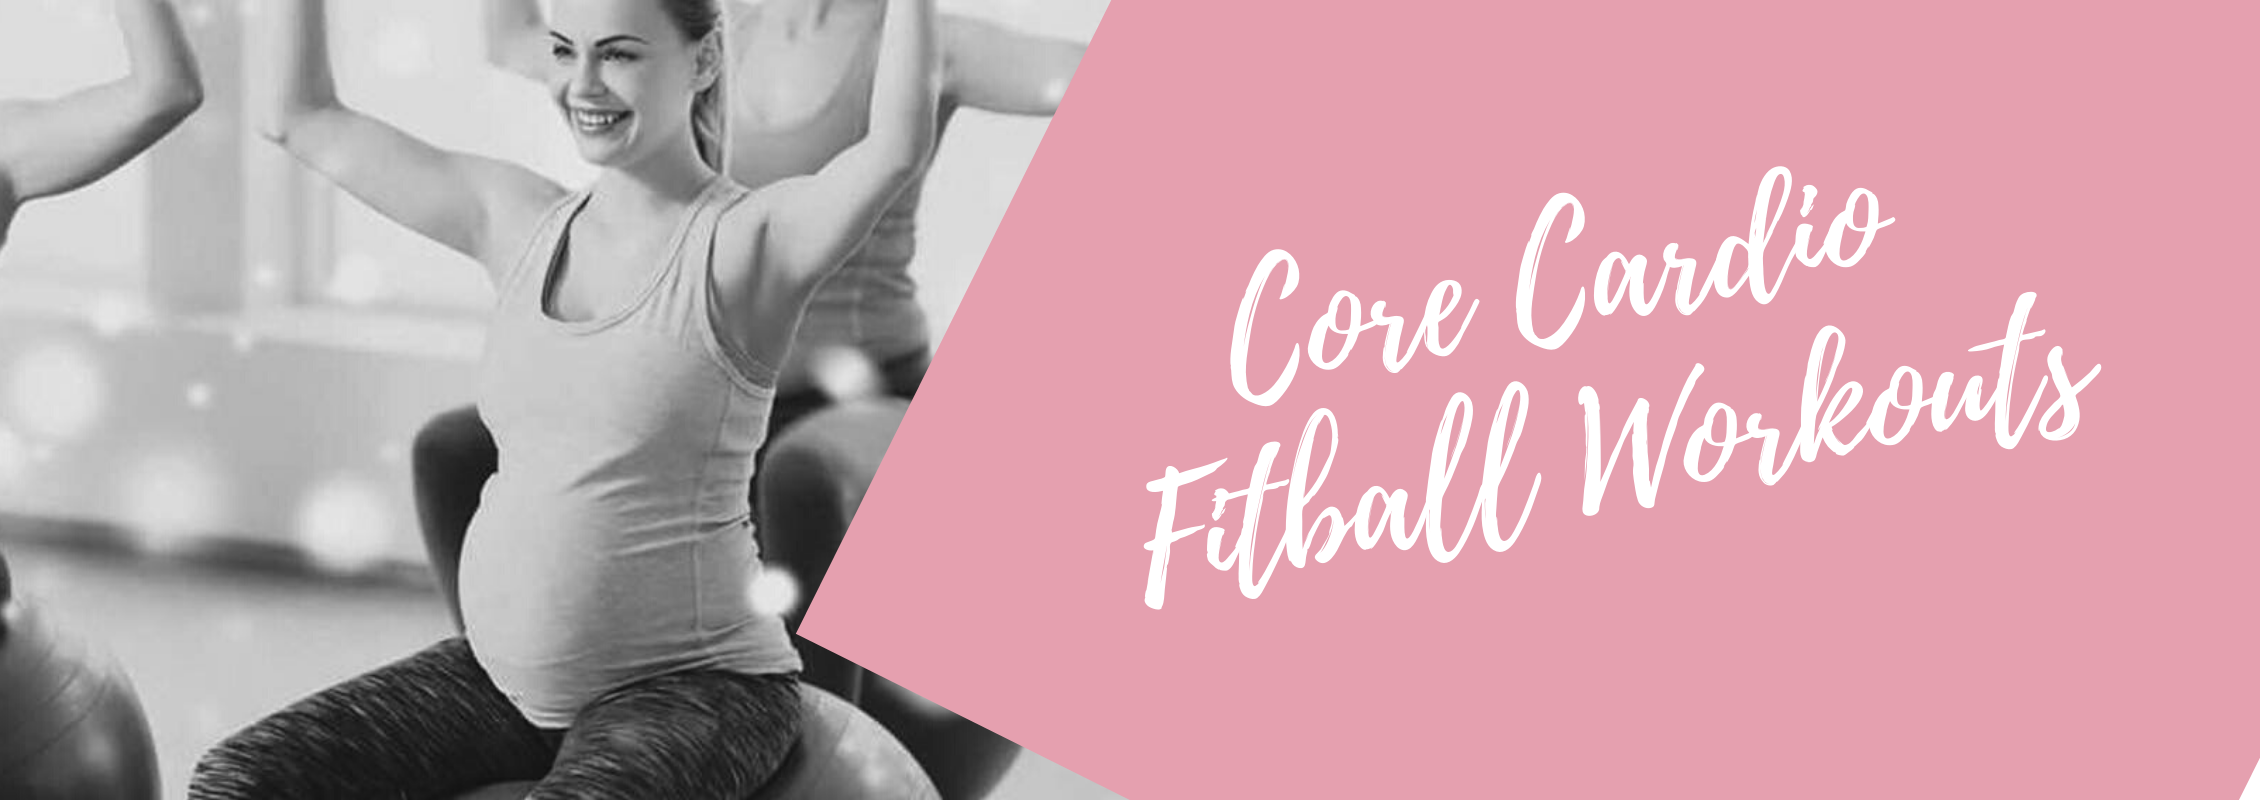 core_cardio_fitball_workouts